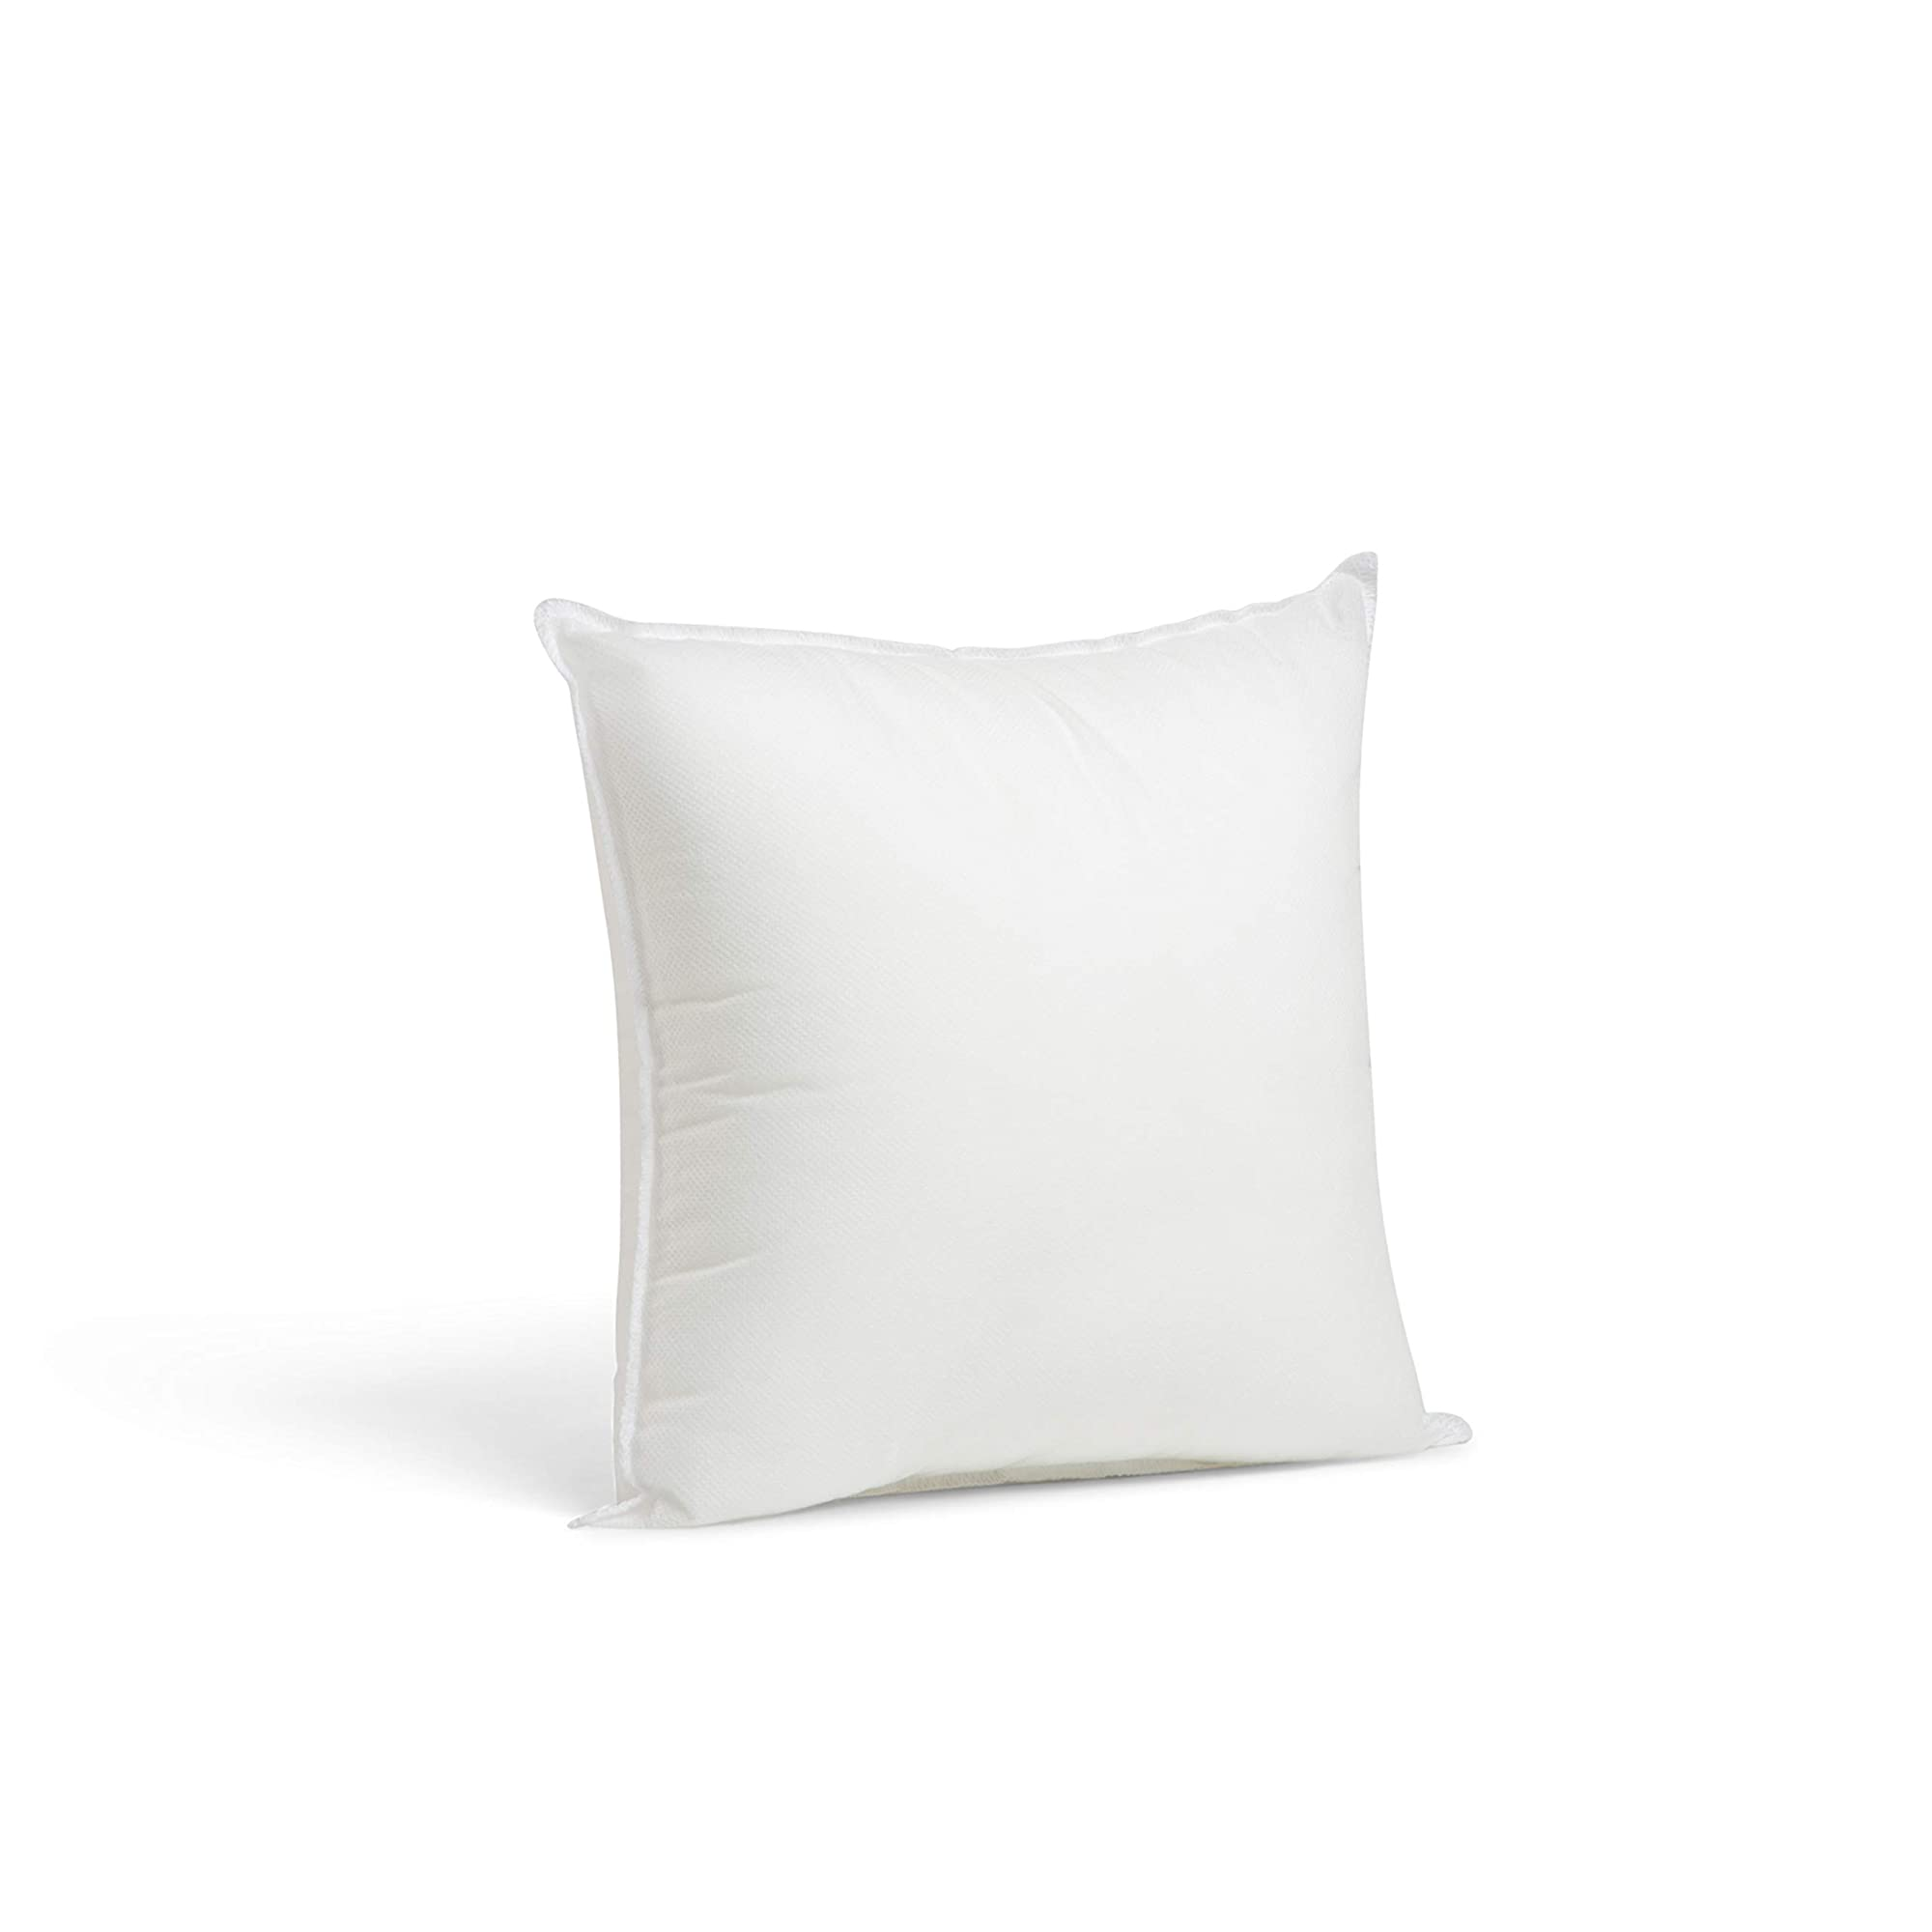 Premium Standard White Pillow Cover